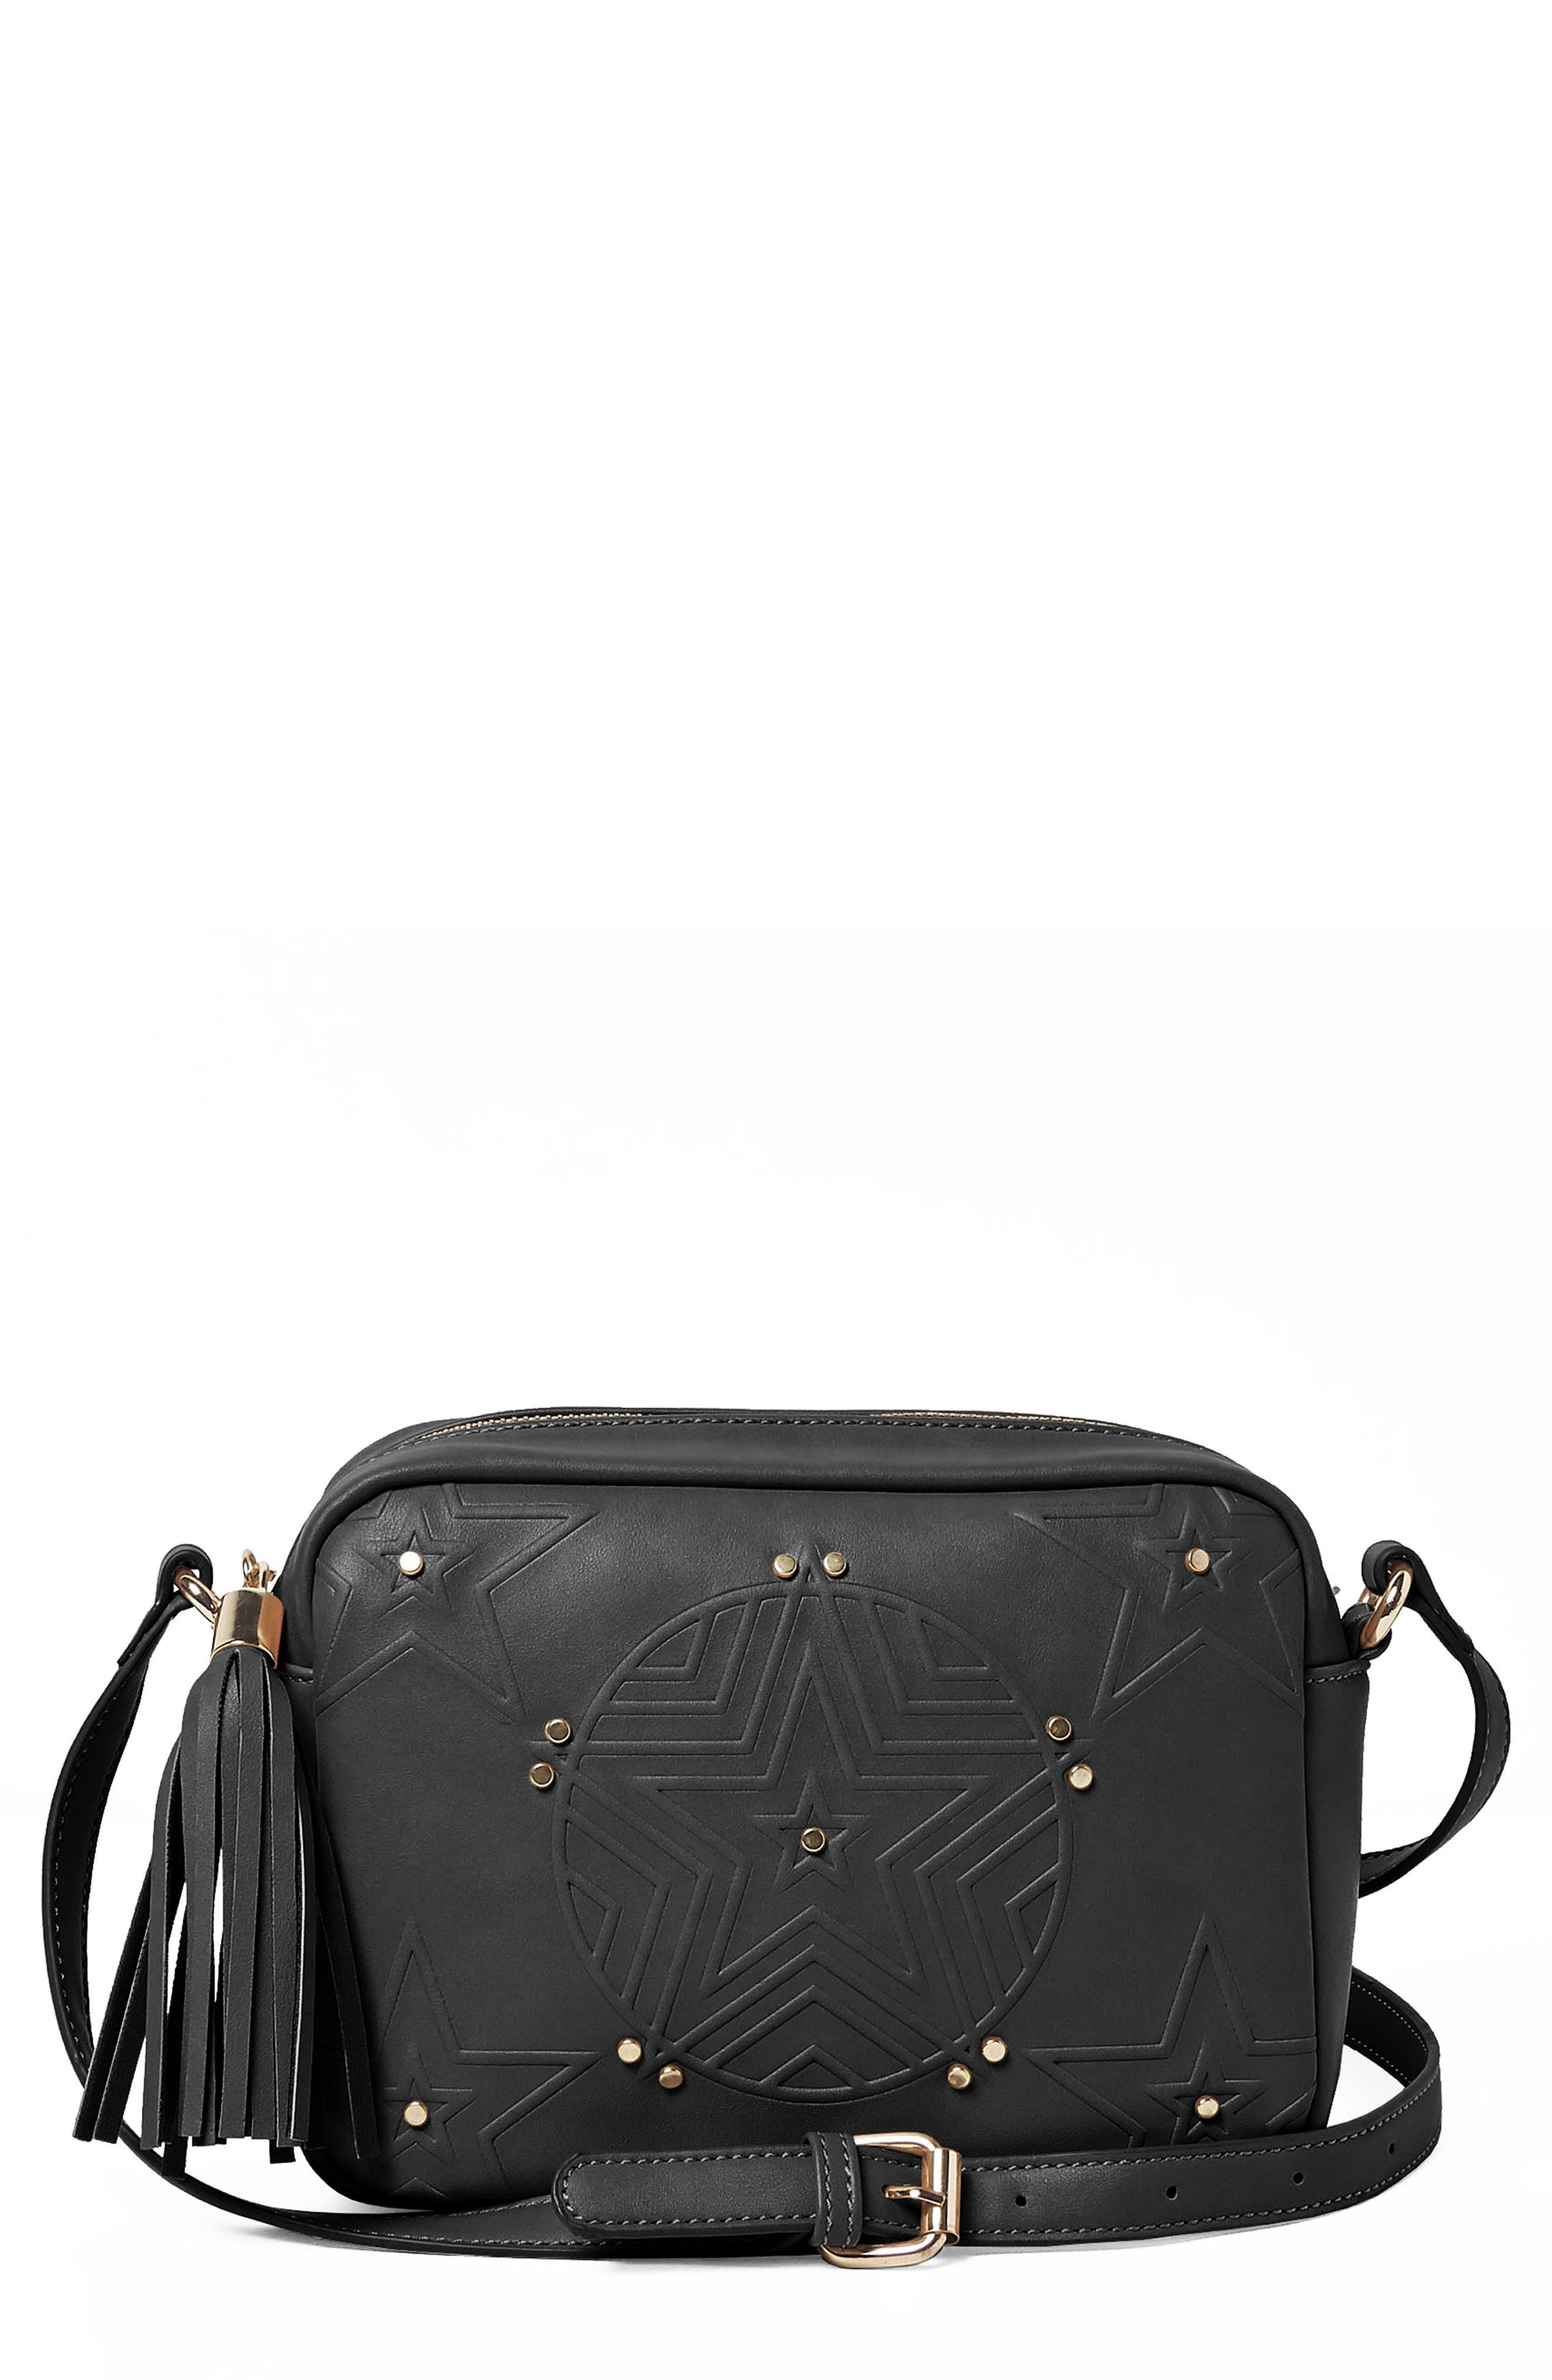 Stargazer Vegan Leather Crossbody Bag,                         Main,                         color, Black